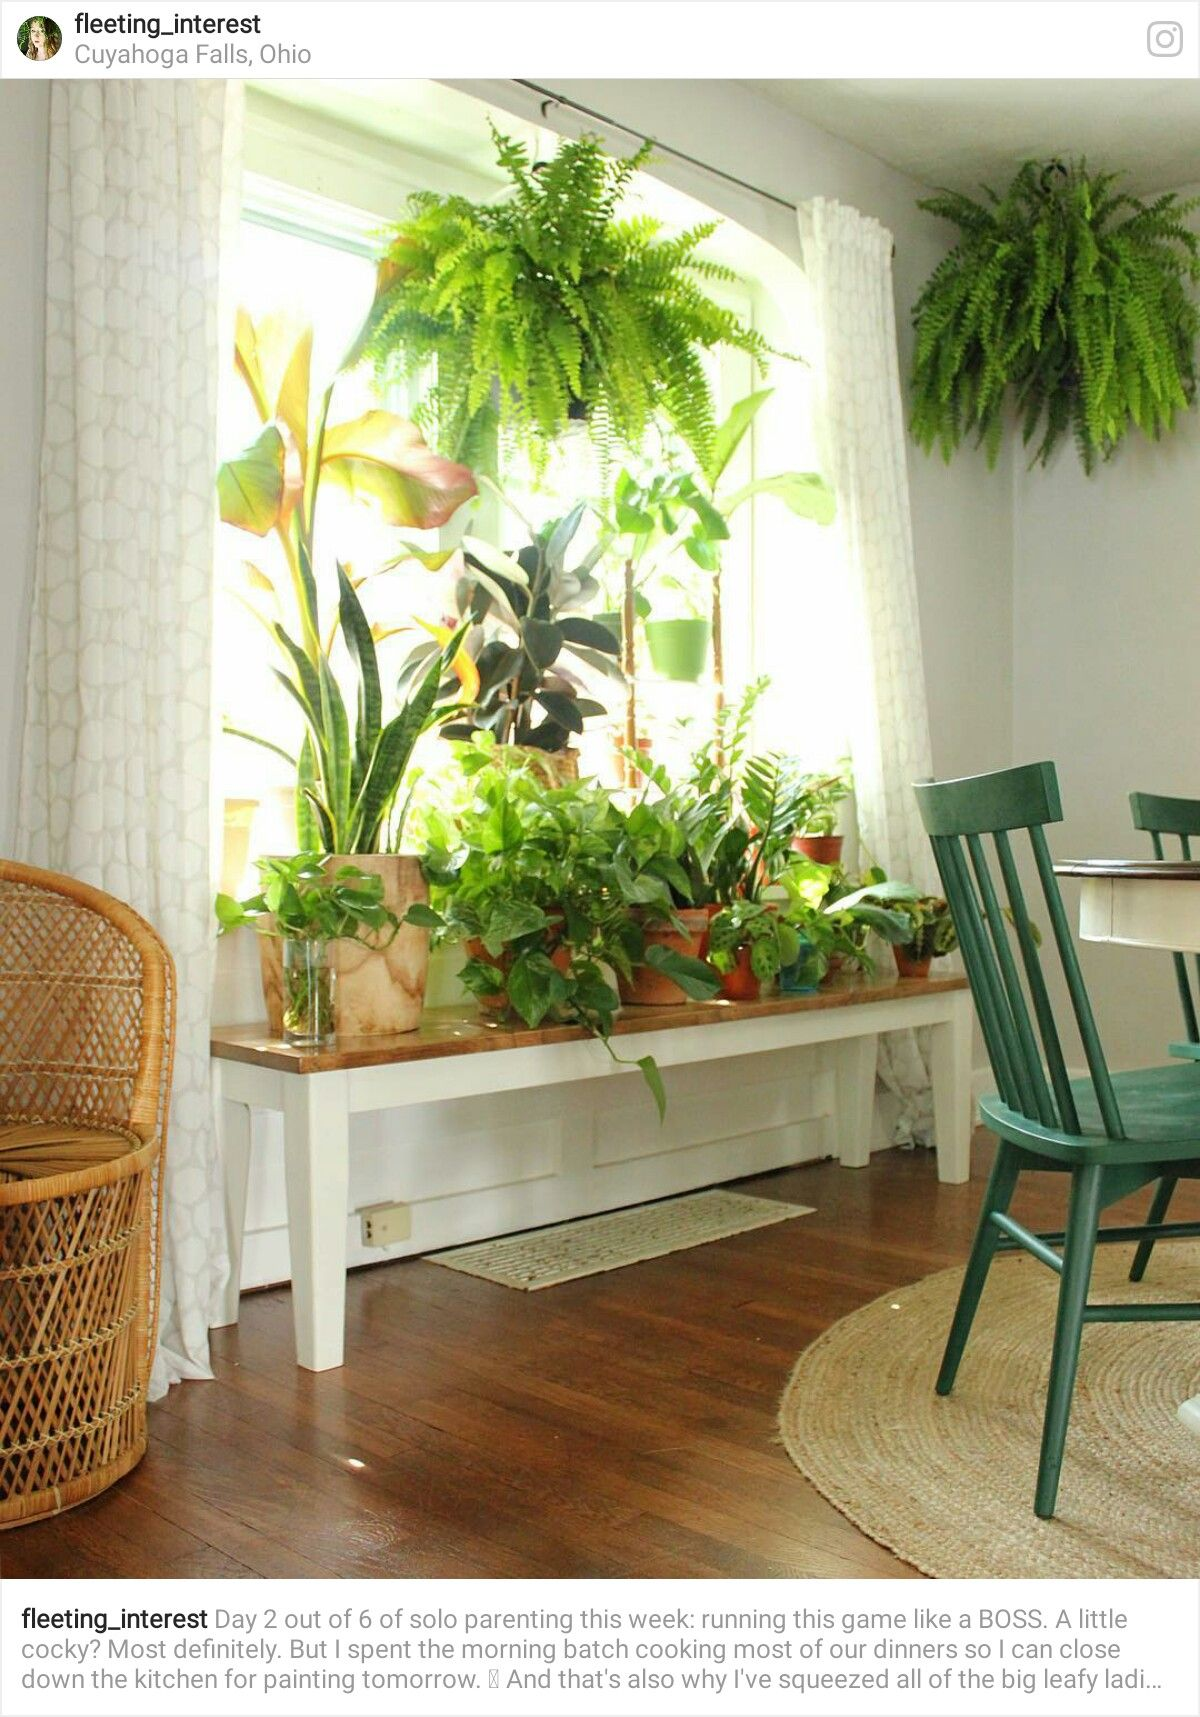 Pin By Doris Barrientos On Green Thumb Gardening Landscaping House Plants Indoor Room With Plants Plant Decor